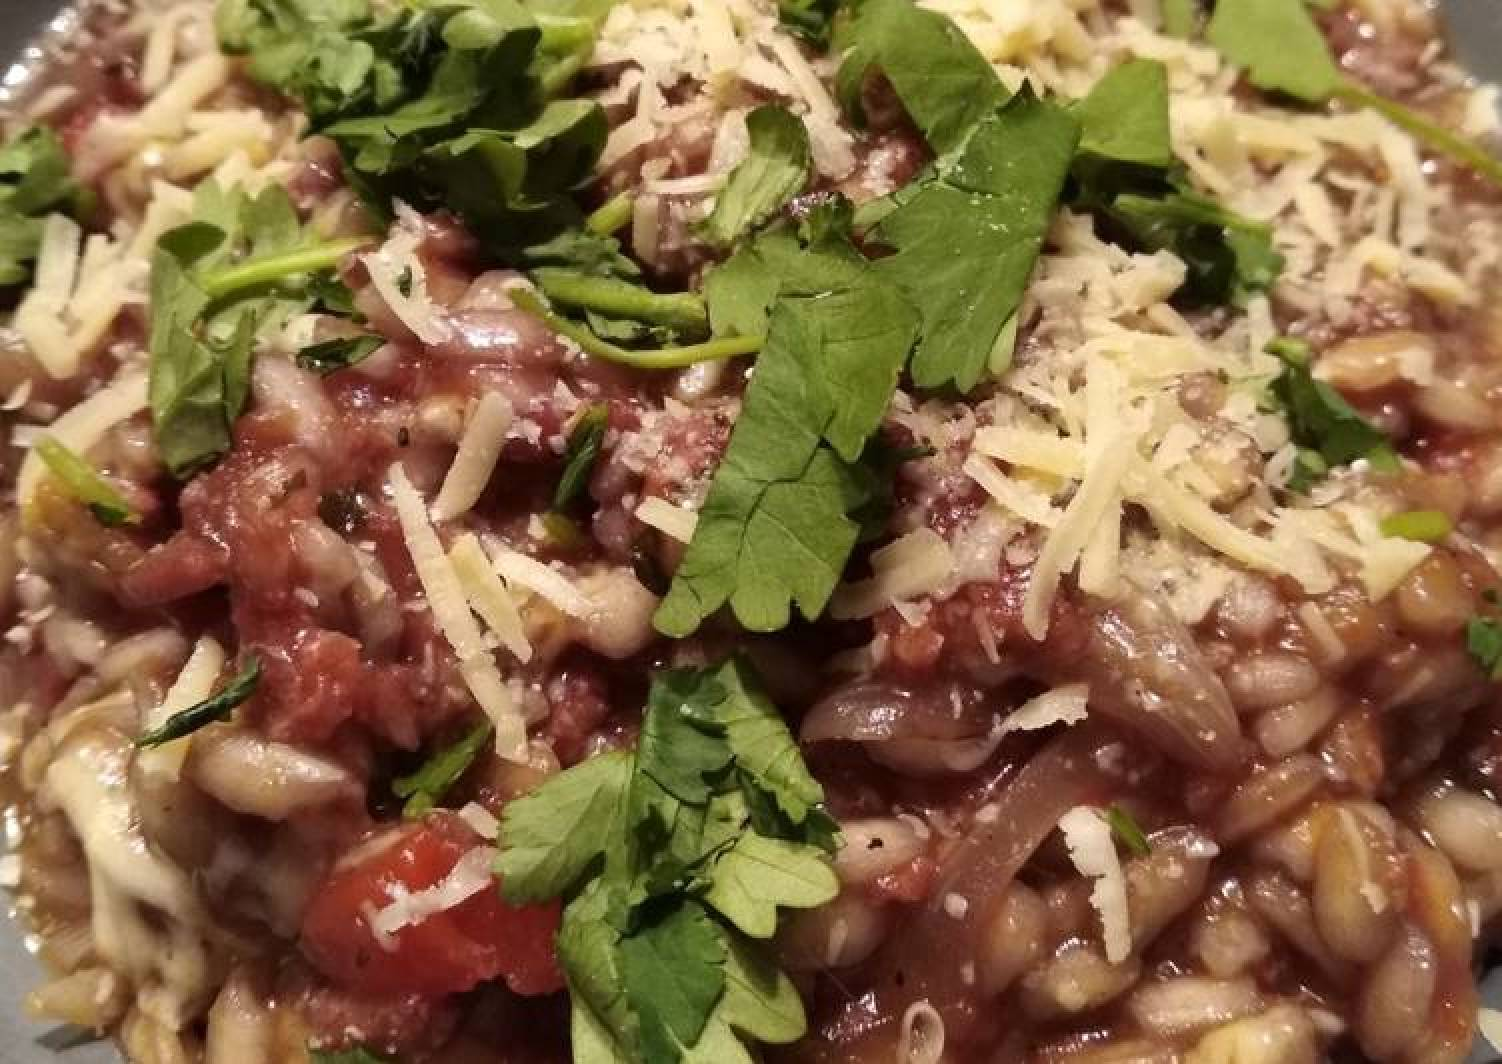 Red risotto with chorizo (or fake bacon)